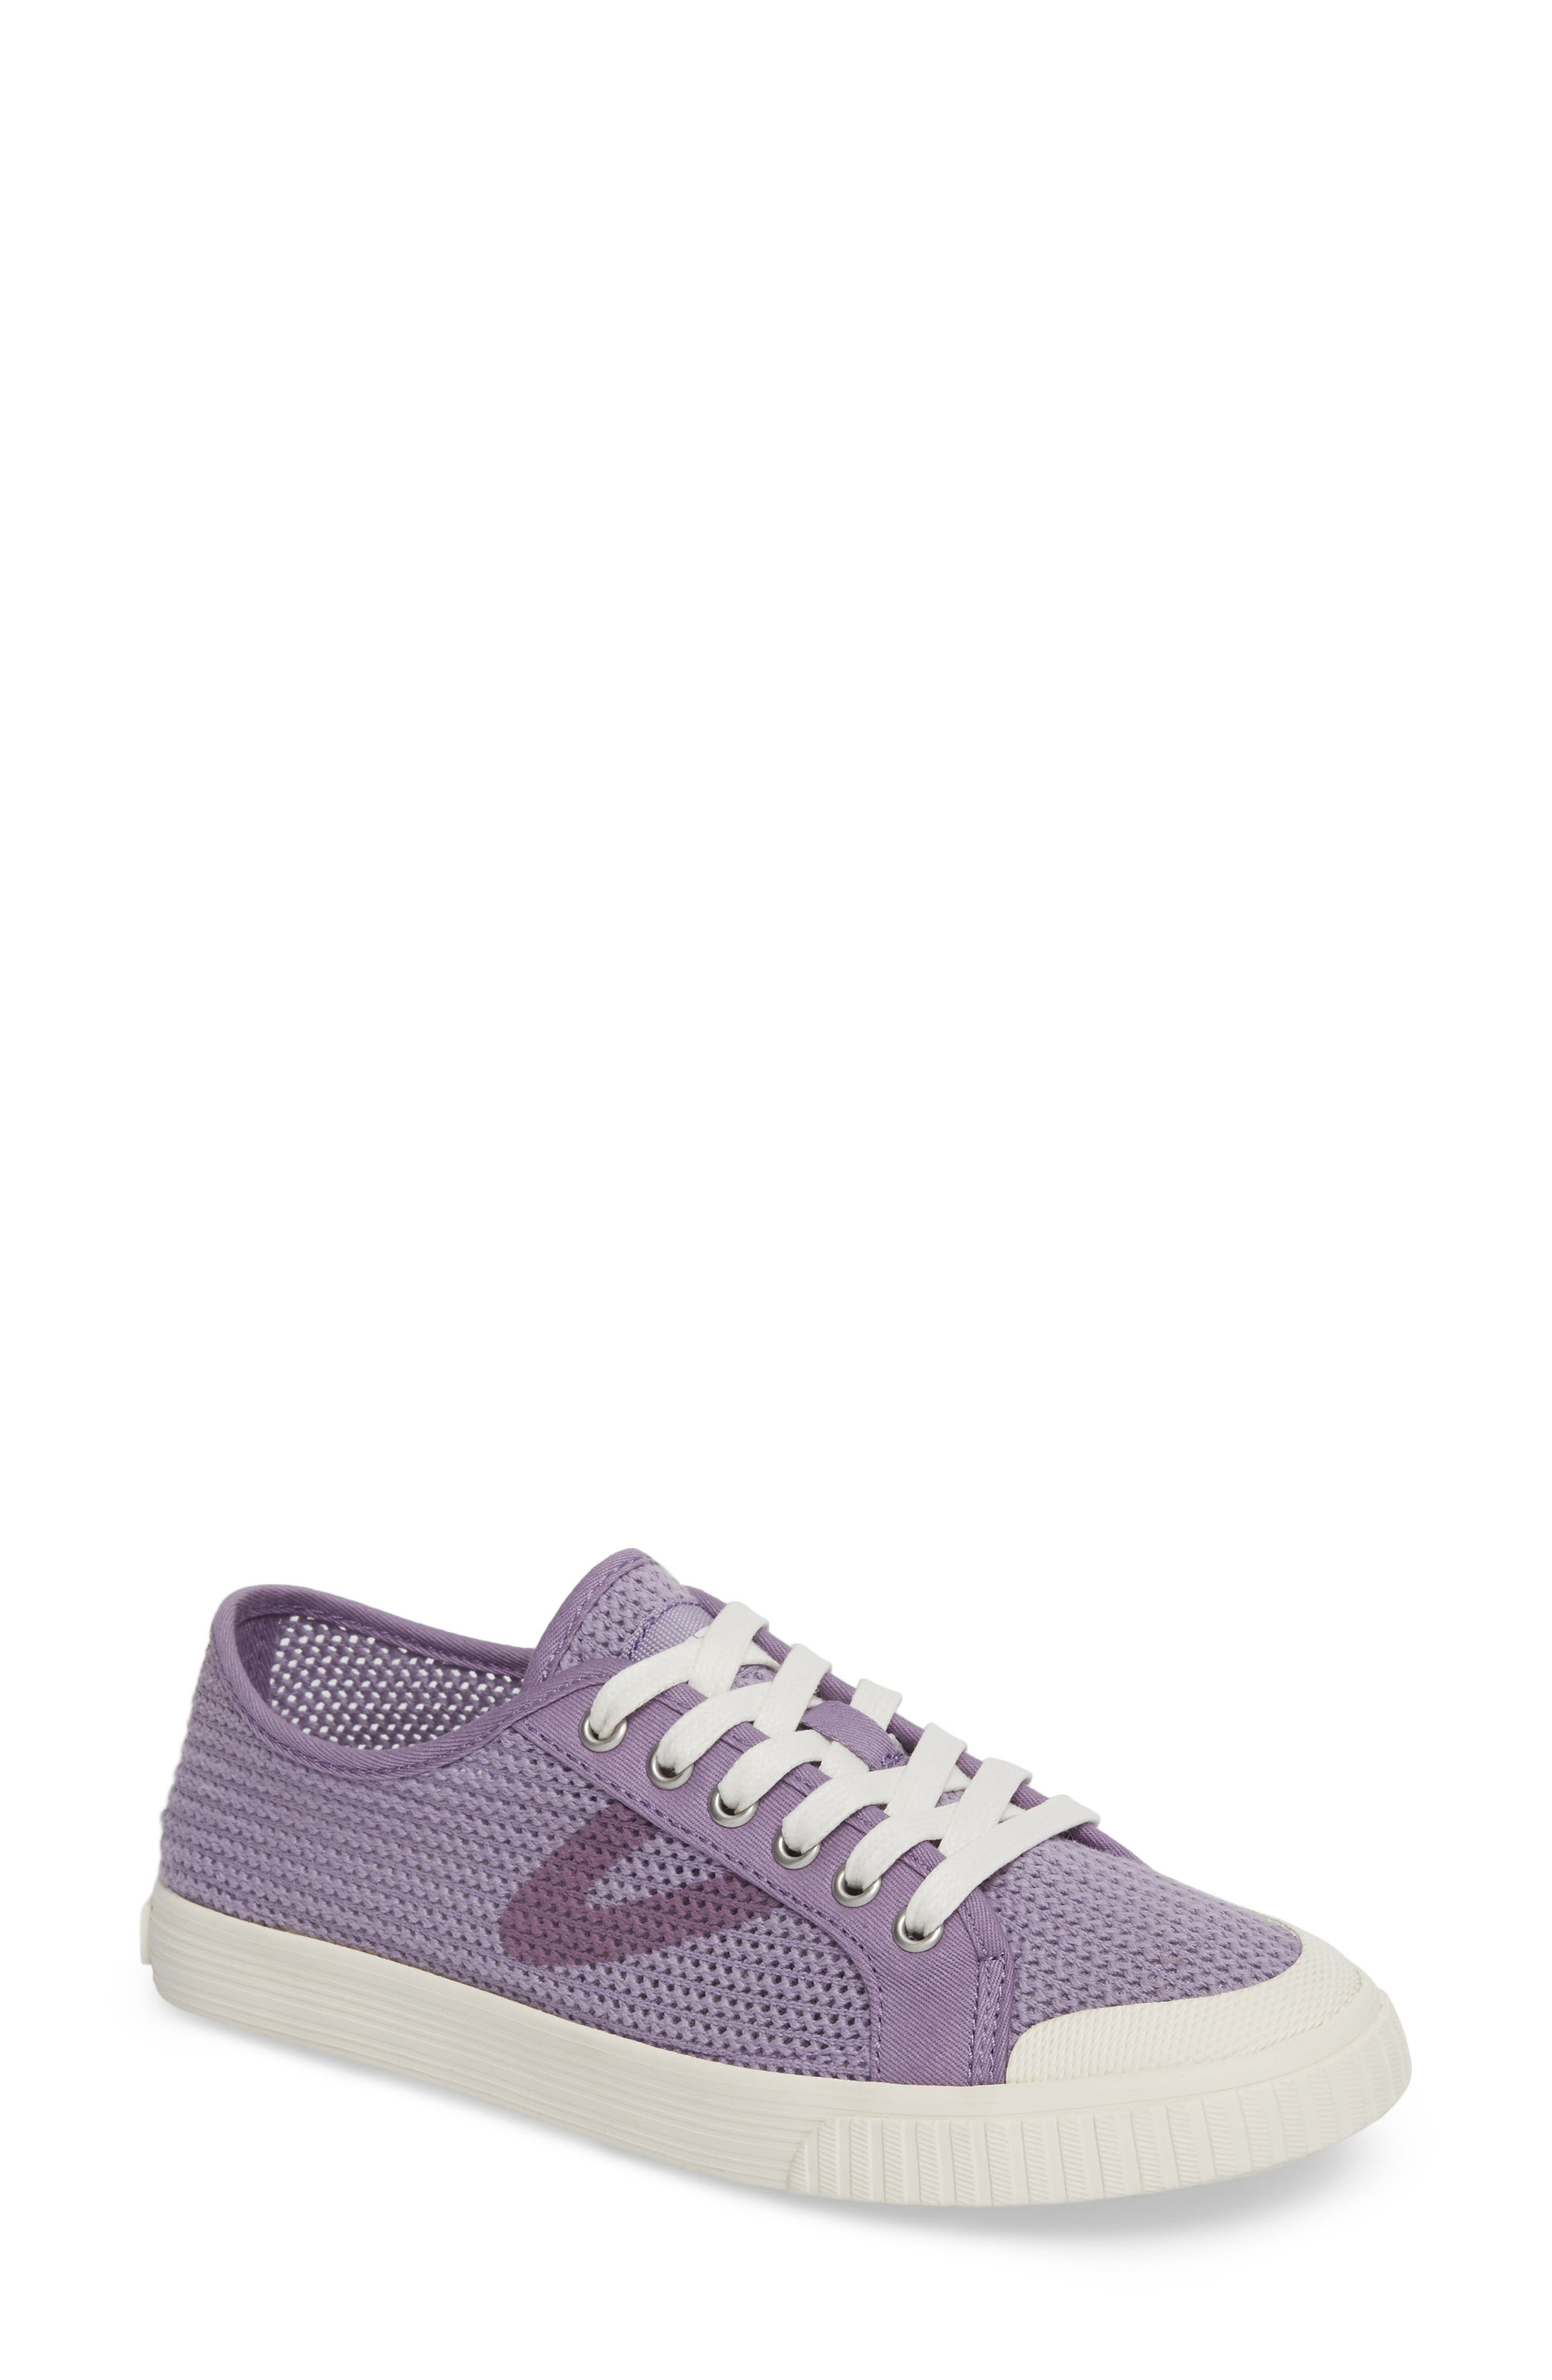 'Tournament Net' Sneaker,                             Main thumbnail 1, color,                             Lavender Cotton Mesh